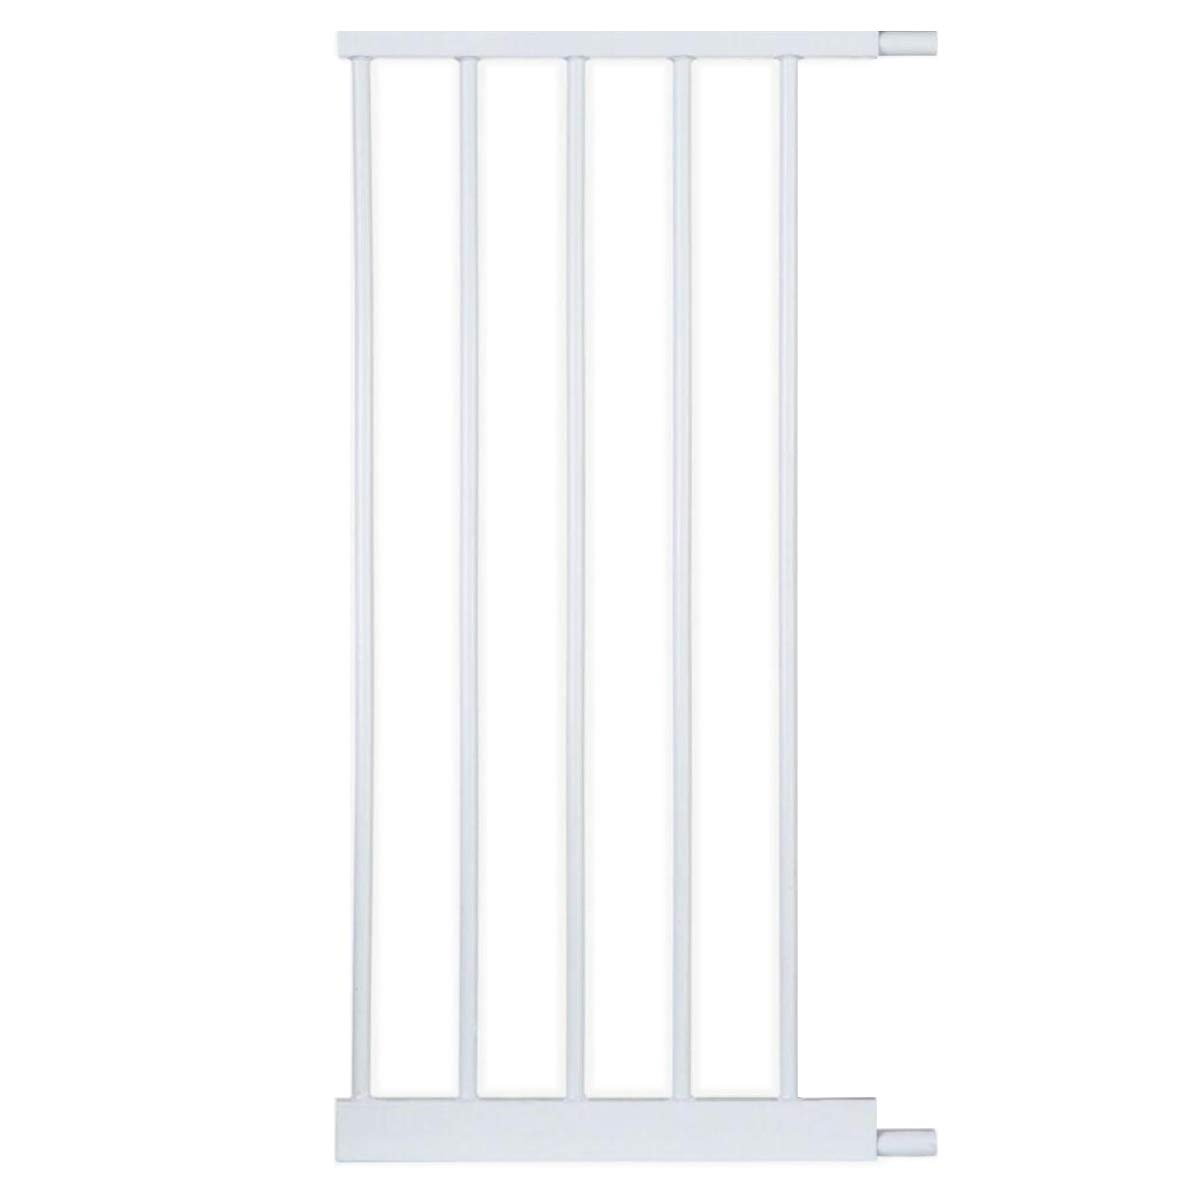 North States 5-Bar Extension for Auto-Close Baby Gate: Add extension for a gate up to 52.75'' wide (Adds 14'' width, Soft White) by North States